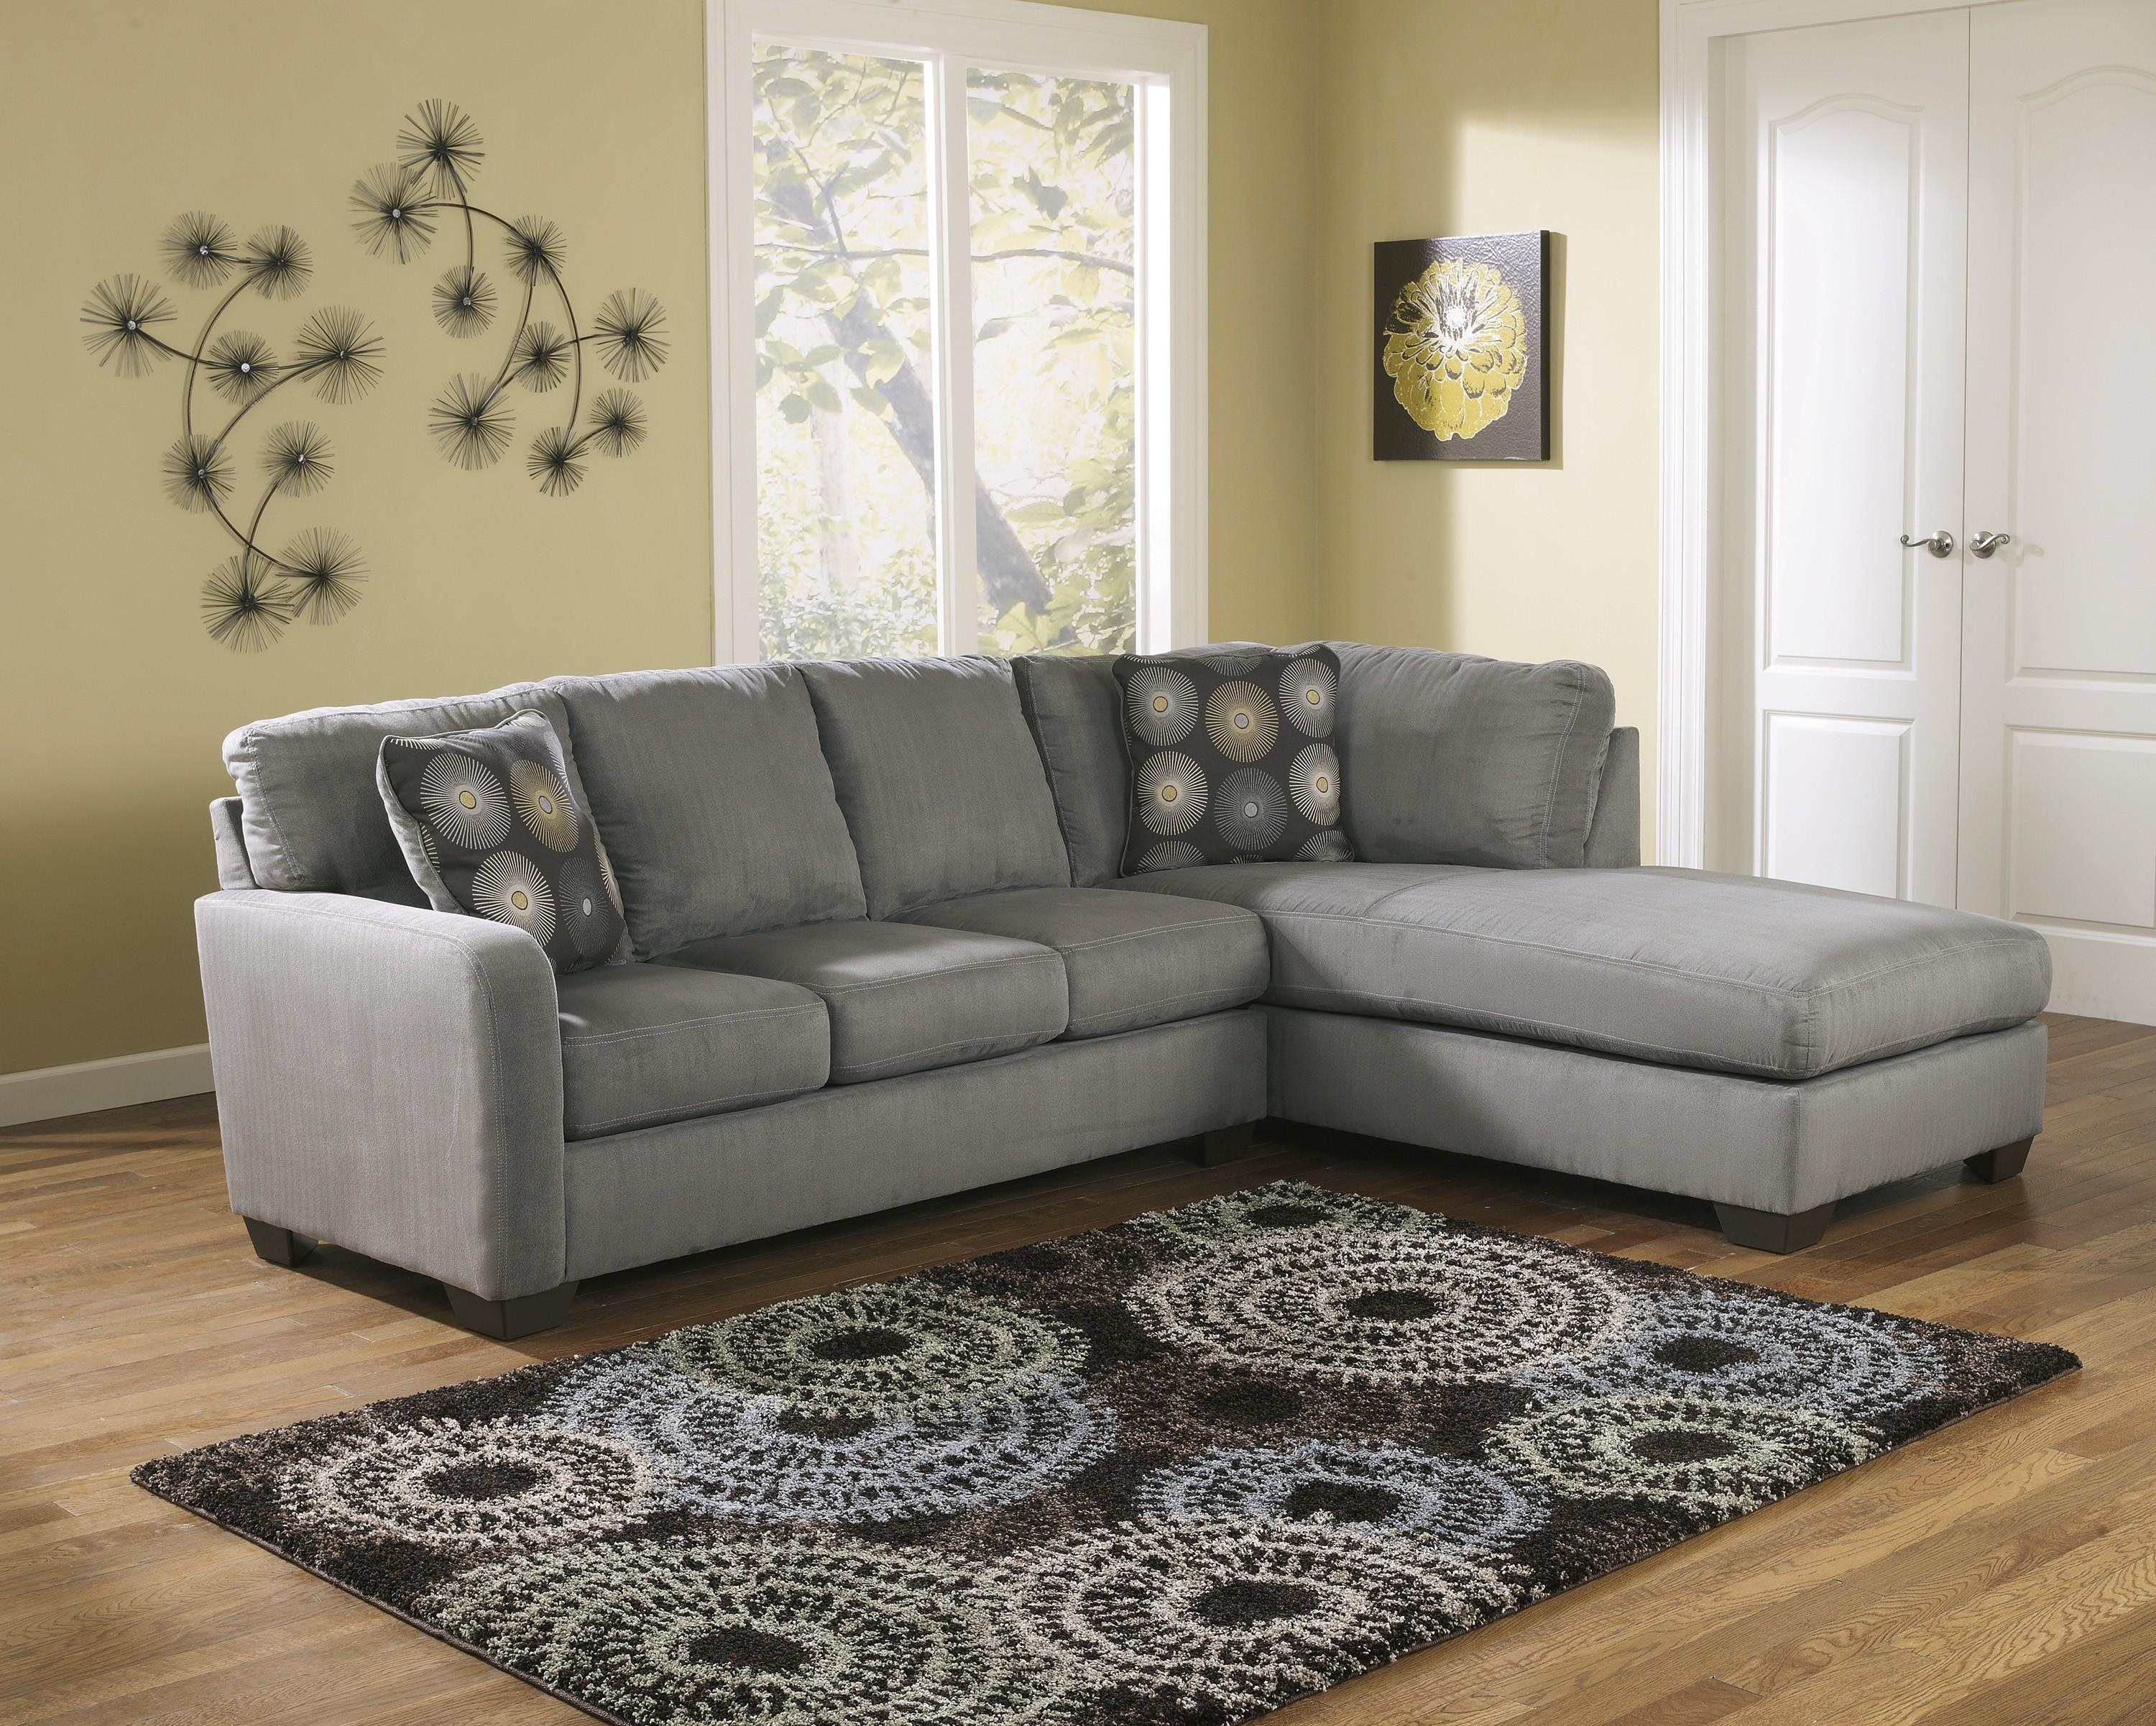 Ashley Zella Charcoal Gray Tone Fabric Sectional Sofa With Raf Chaise Within Charcoal Grey Sofas (View 19 of 20)